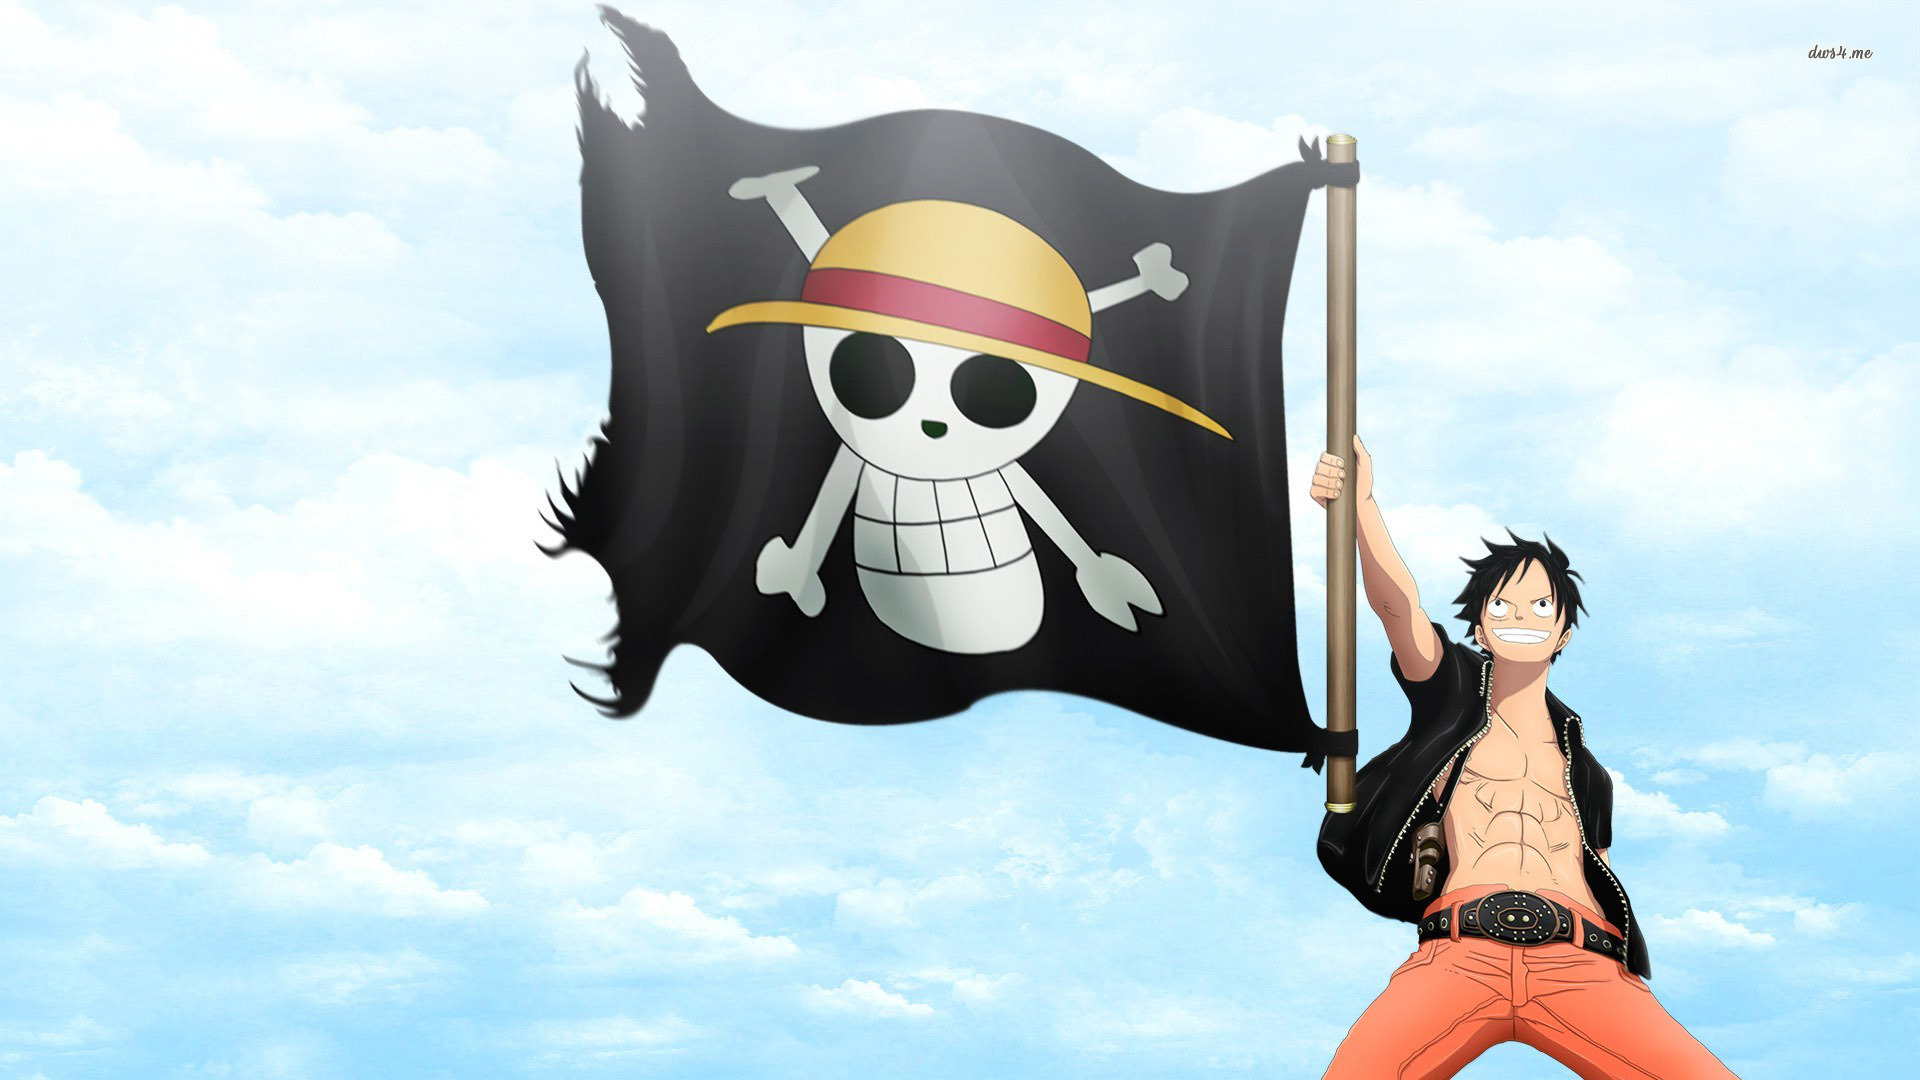 Free Download One Piece Luffy Android Hd Wallpaper 1920x1080 For Your Desktop Mobile Tablet Explore 48 One Piece Android Wallpaper One Piece Anime Wallpaper One Piece Phone Wallpaper One